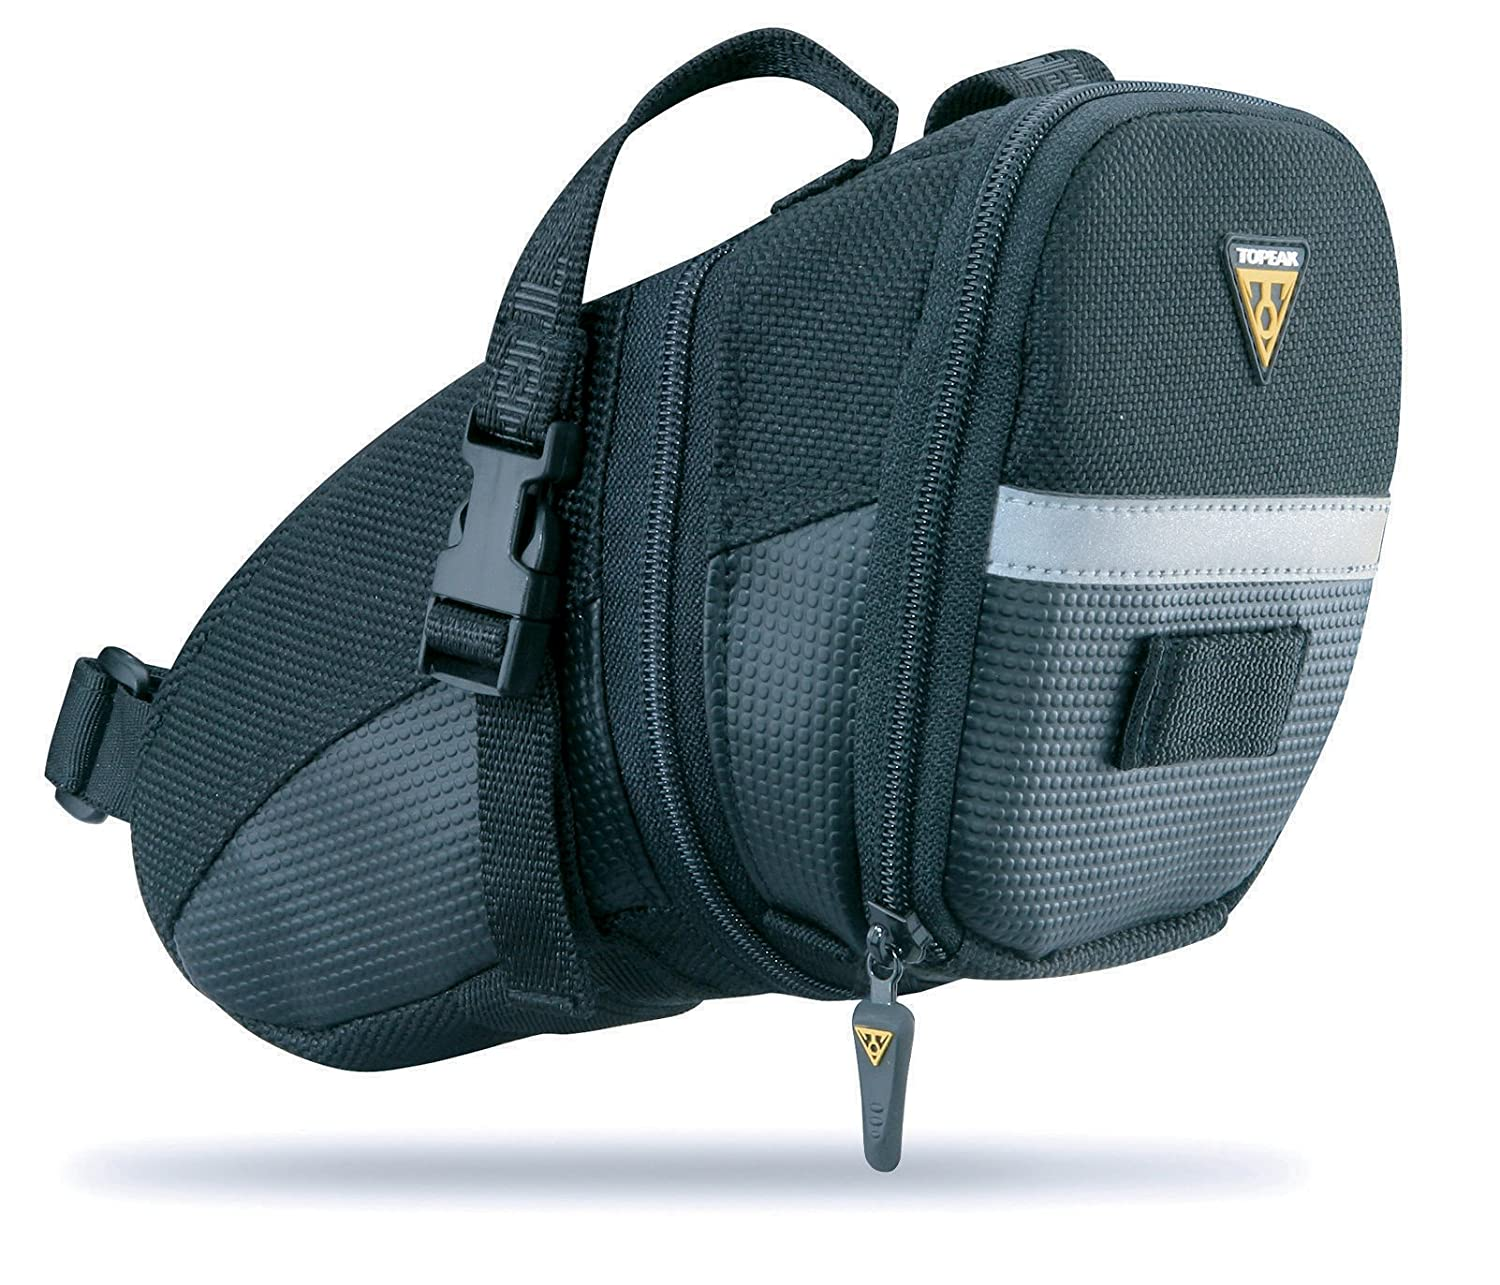 Topeak Aero Wedge Packs Saddle Bag